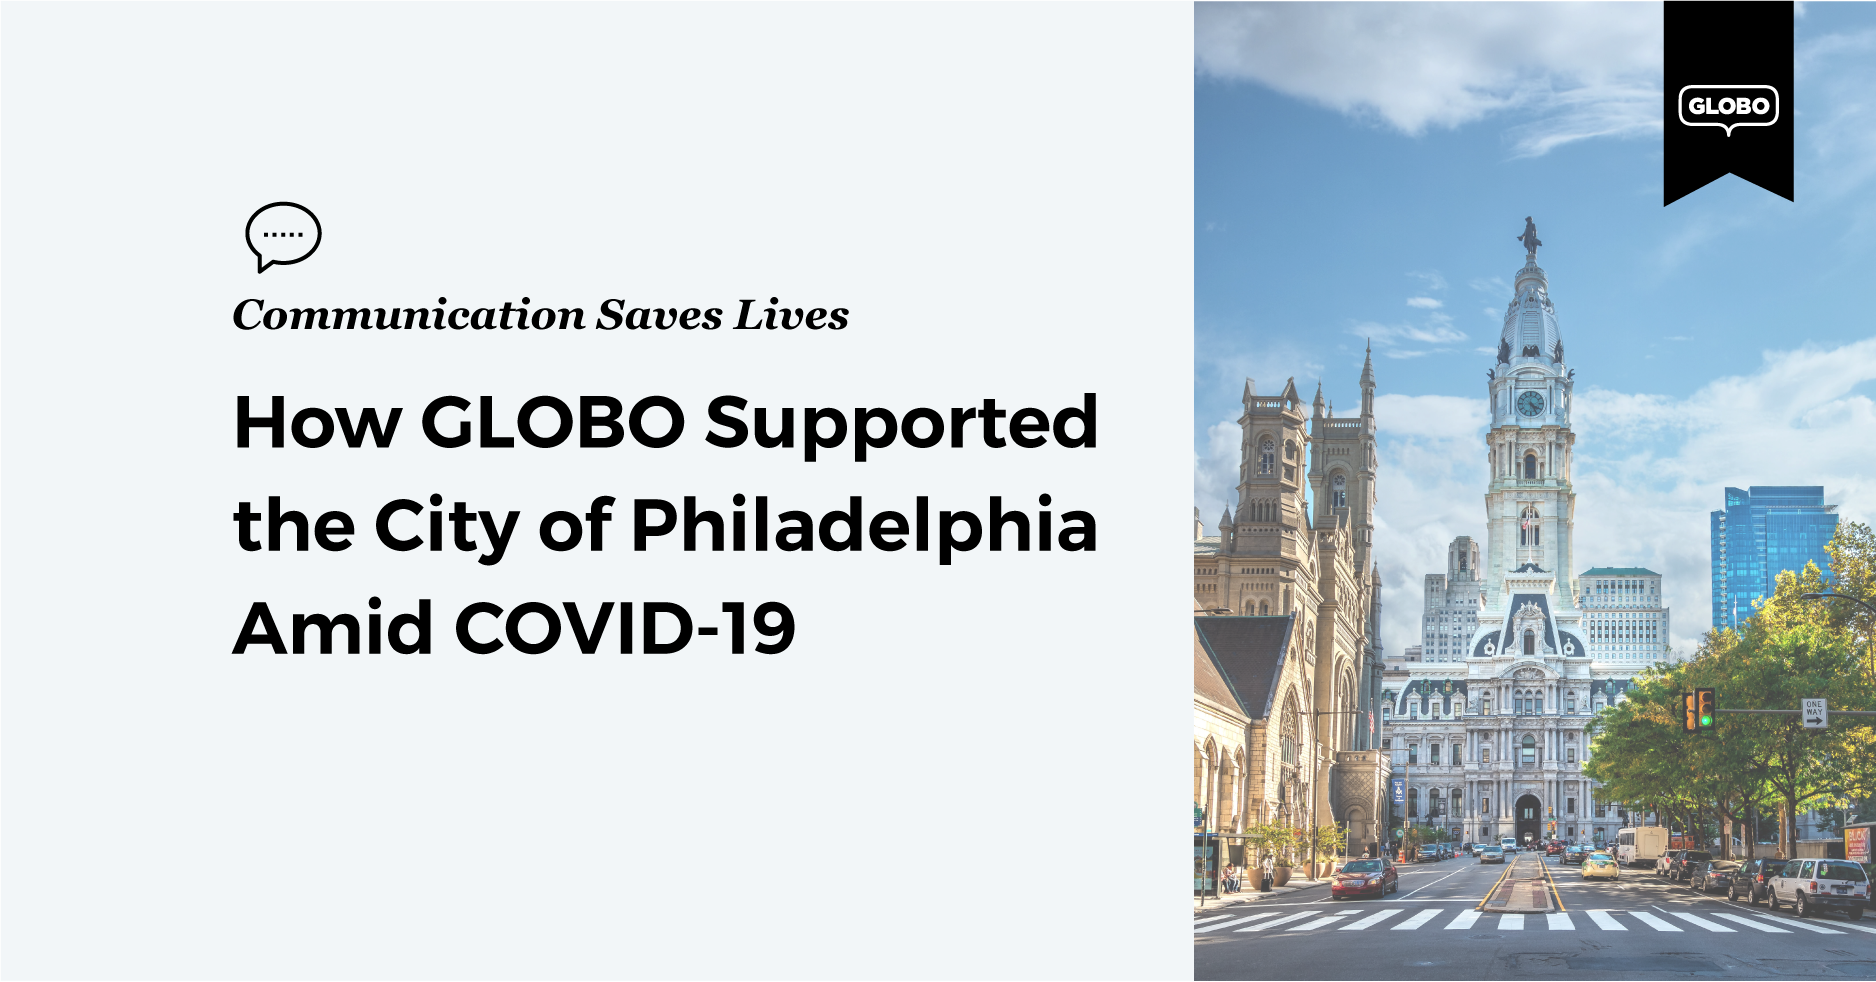 How GLOBO Supported the City of Philadelphia Amid COVID-19